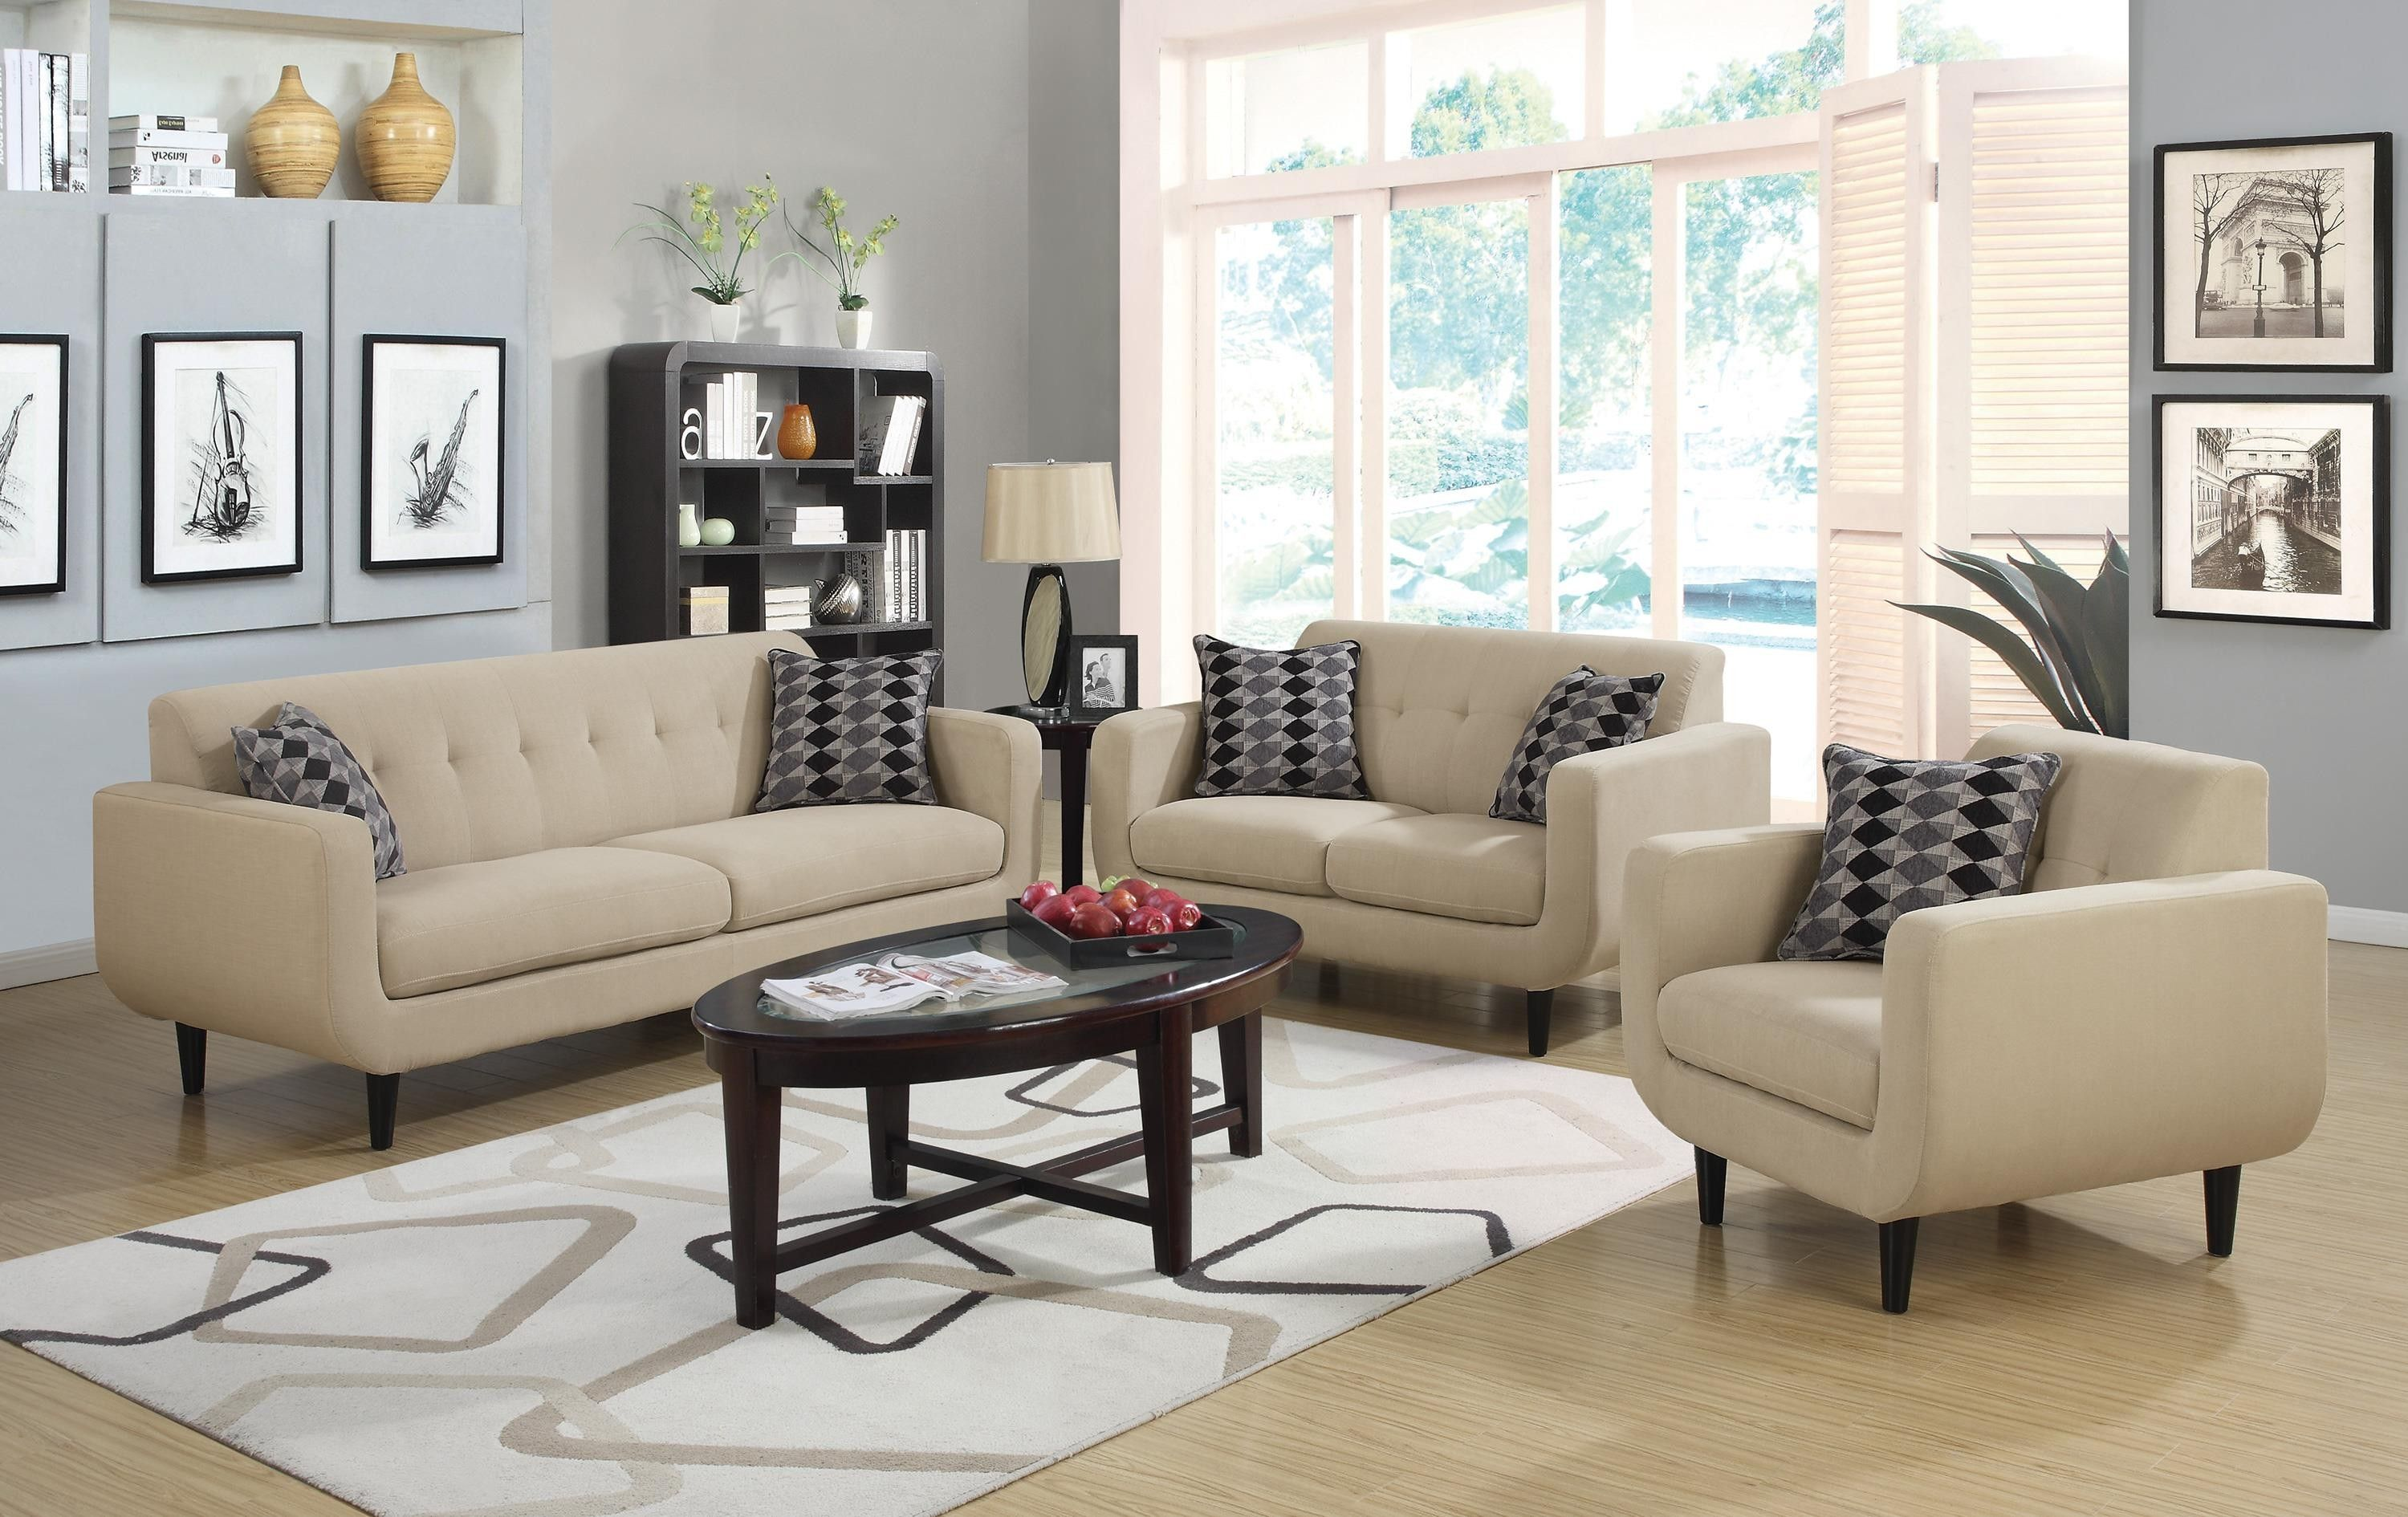 STANSALL IVORY SOFA COLLECTION BY COASTER